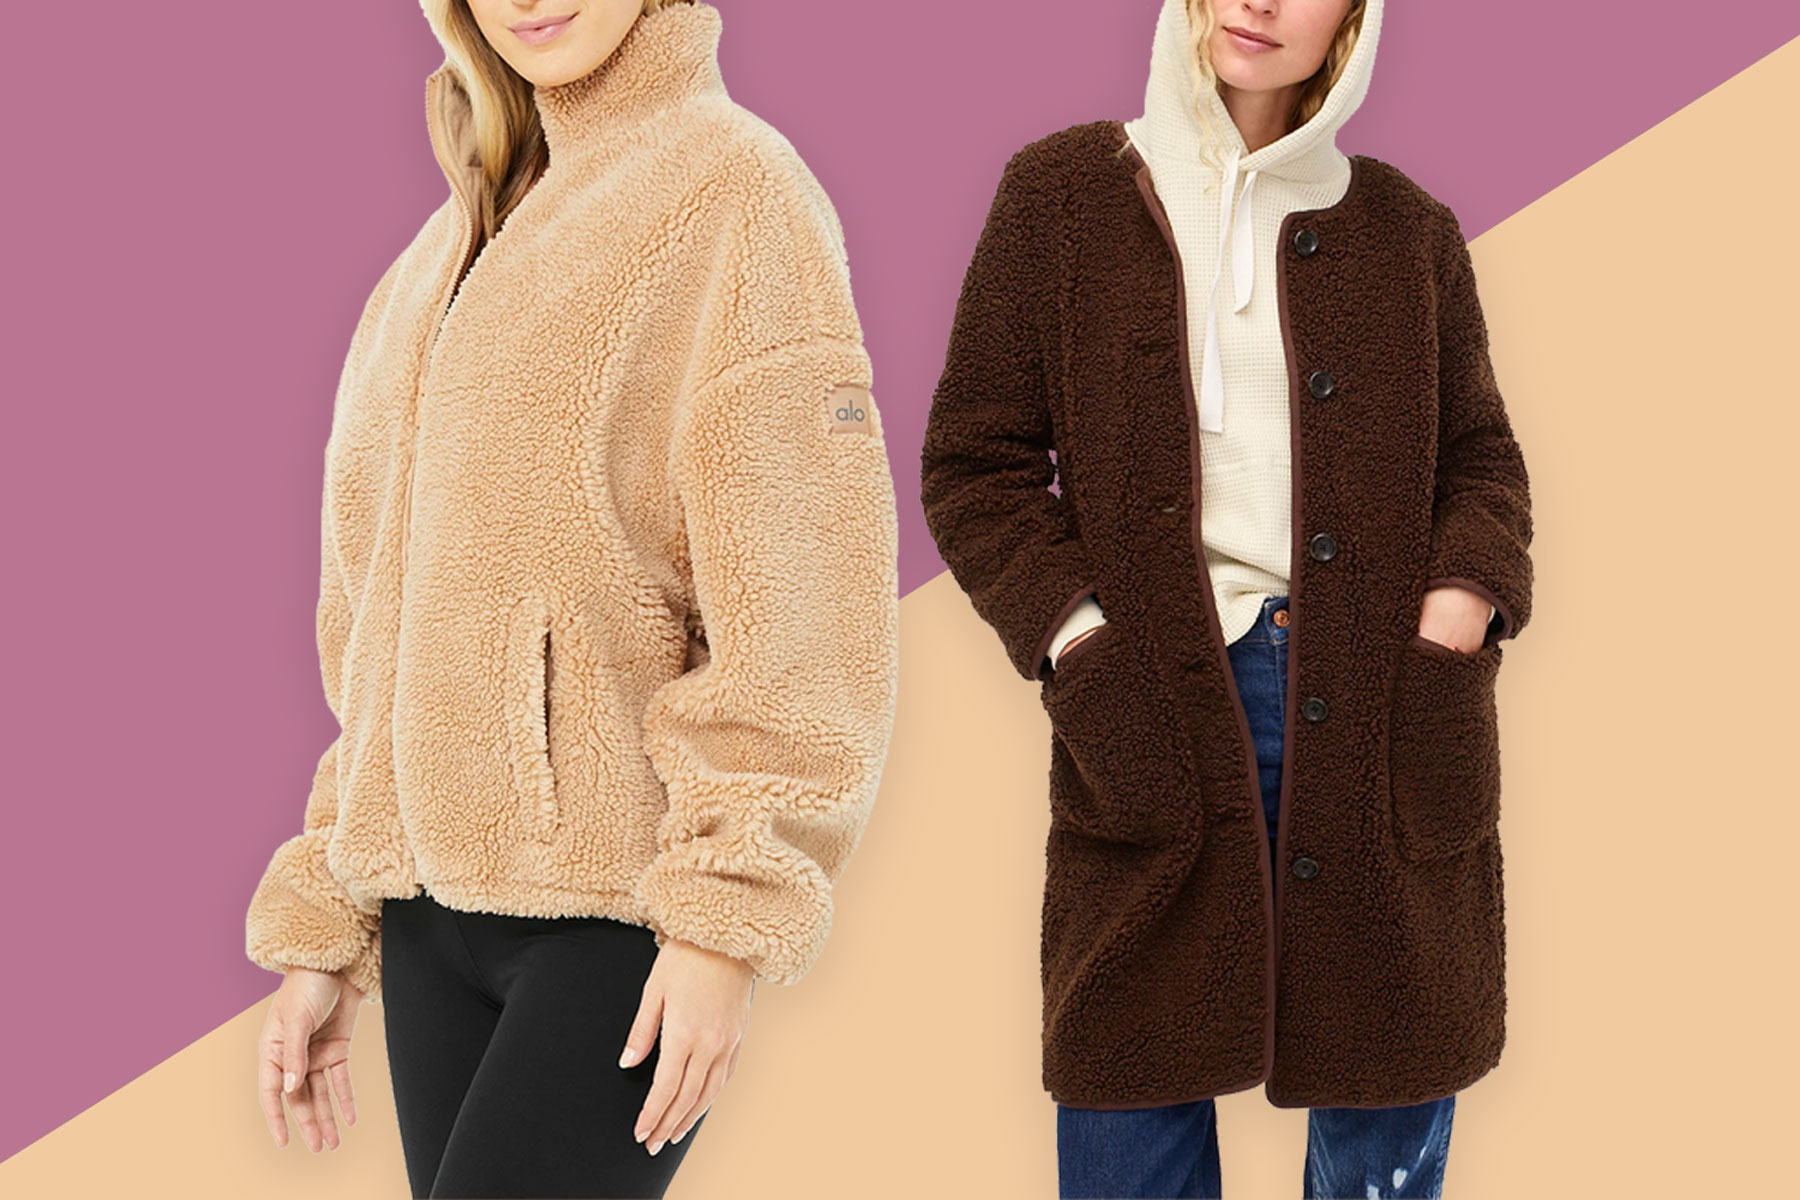 Women wearing camel and brown sherpa jackets